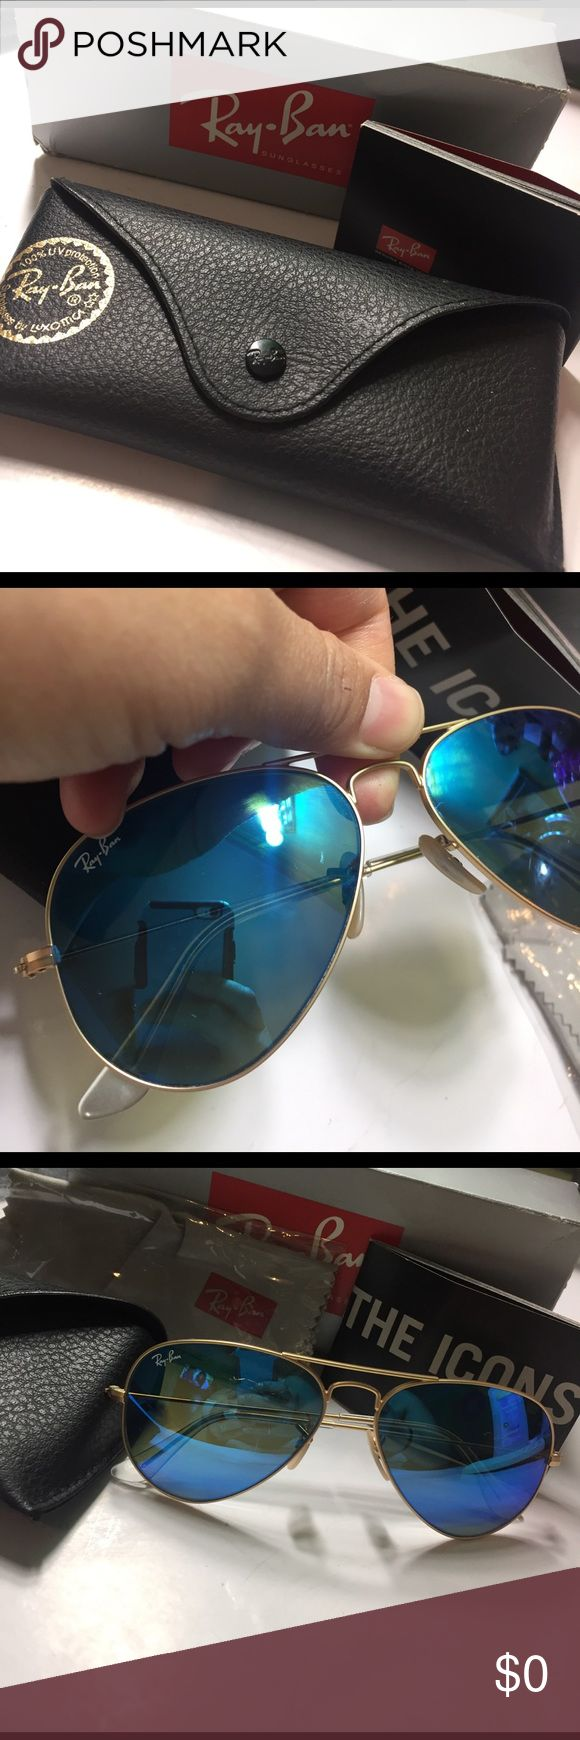 Ray Ban Mirrored Aviators Glasses have a small scratch as seen in pic 1., near to the nose bridge. They come with the pouch, box, booklet, and the cleaning cloth. Made in Italy. 100% uva/uvb protection. Ray-Ban Accessories Sunglasses